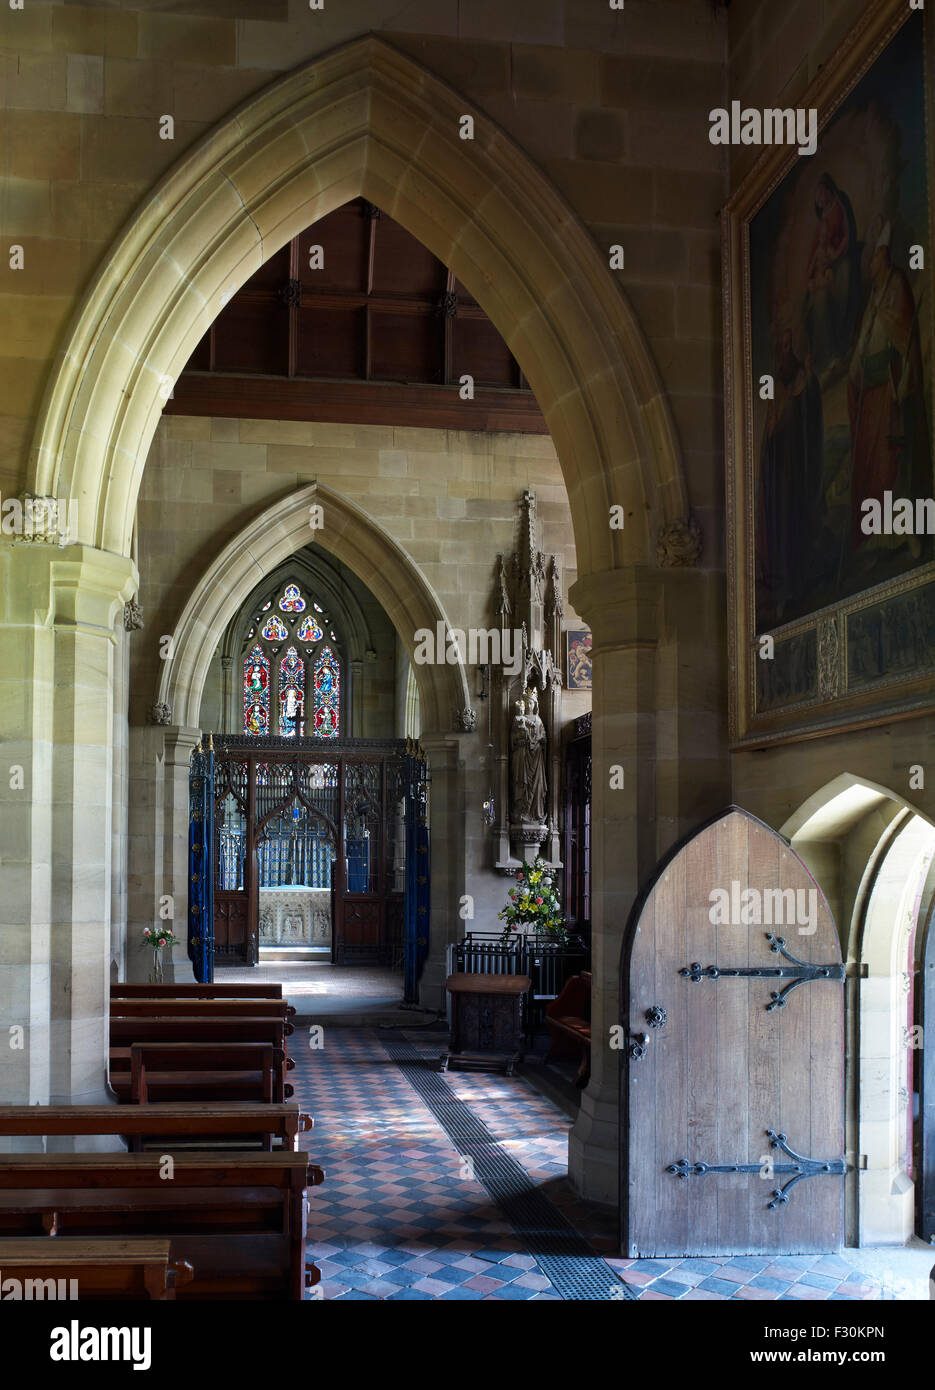 Ramsgate St Augustine Roman Catholic Church Kent Interior By AWN Pugin In The Gothic Revival